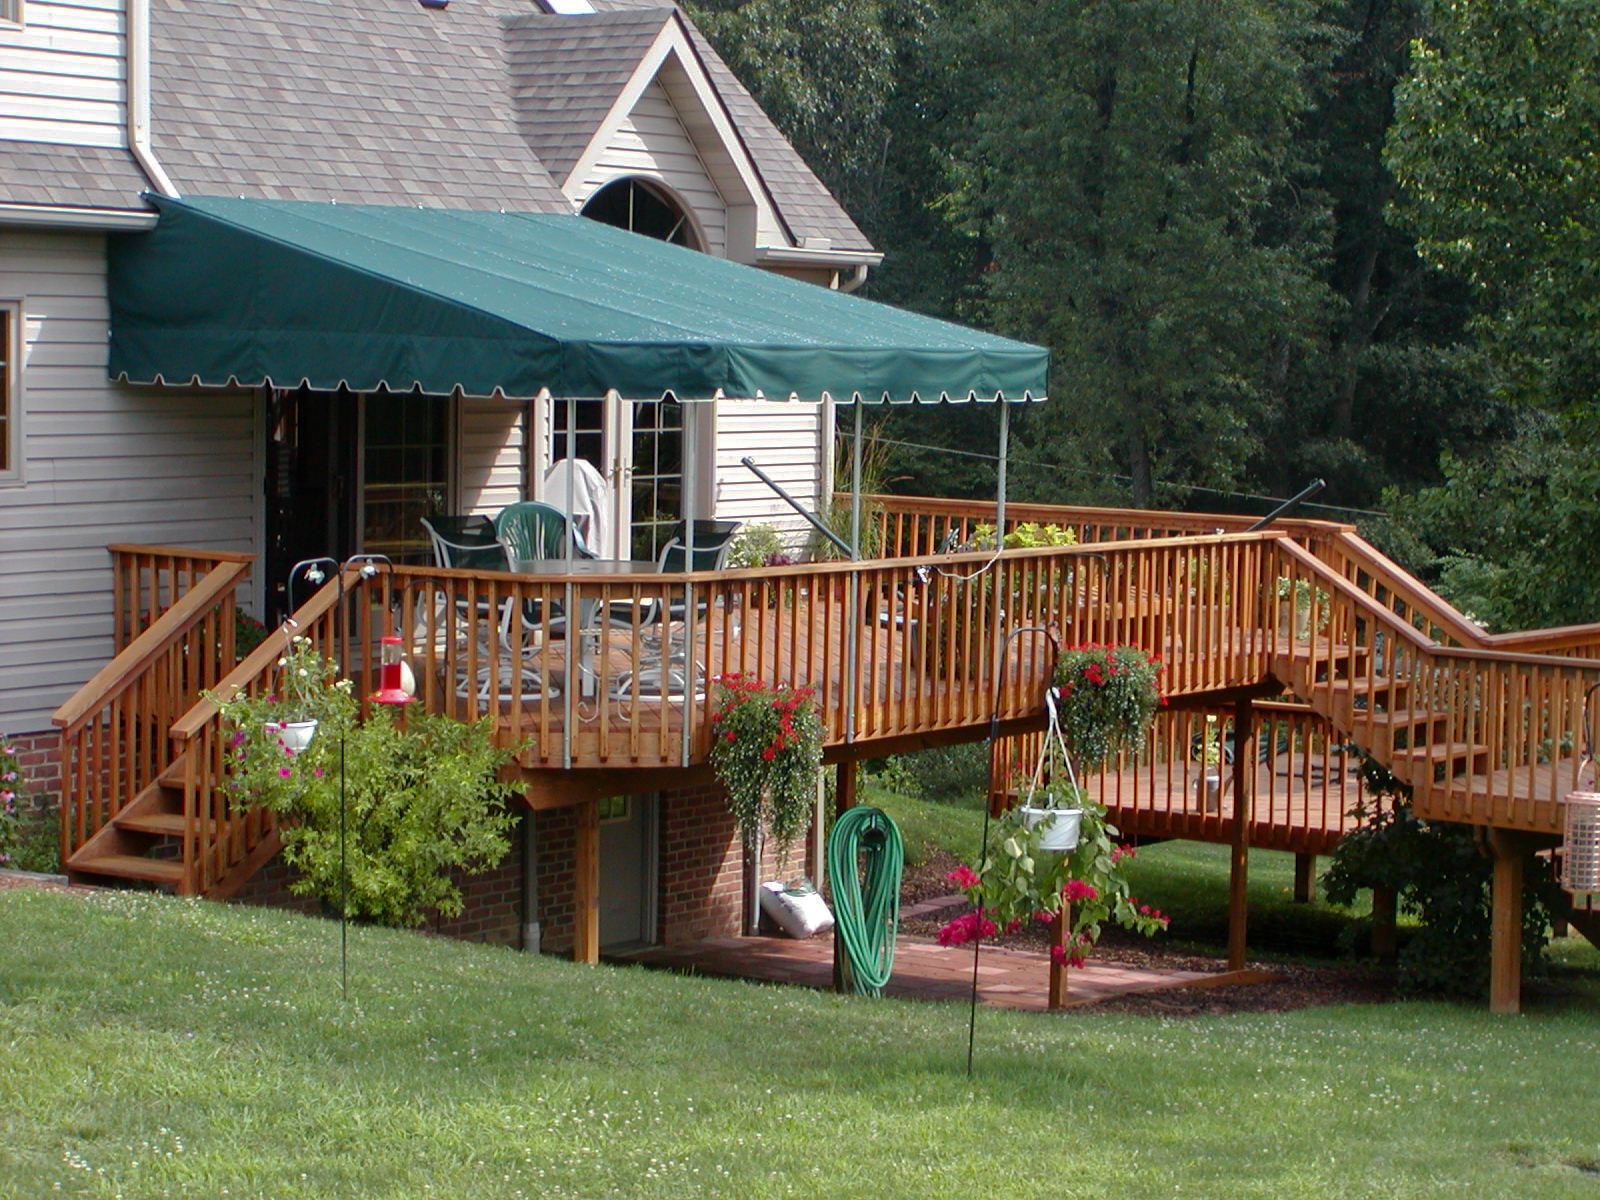 cover patio above awning decks with for portfolio interlaced custom fabric awnings all stationary covers items